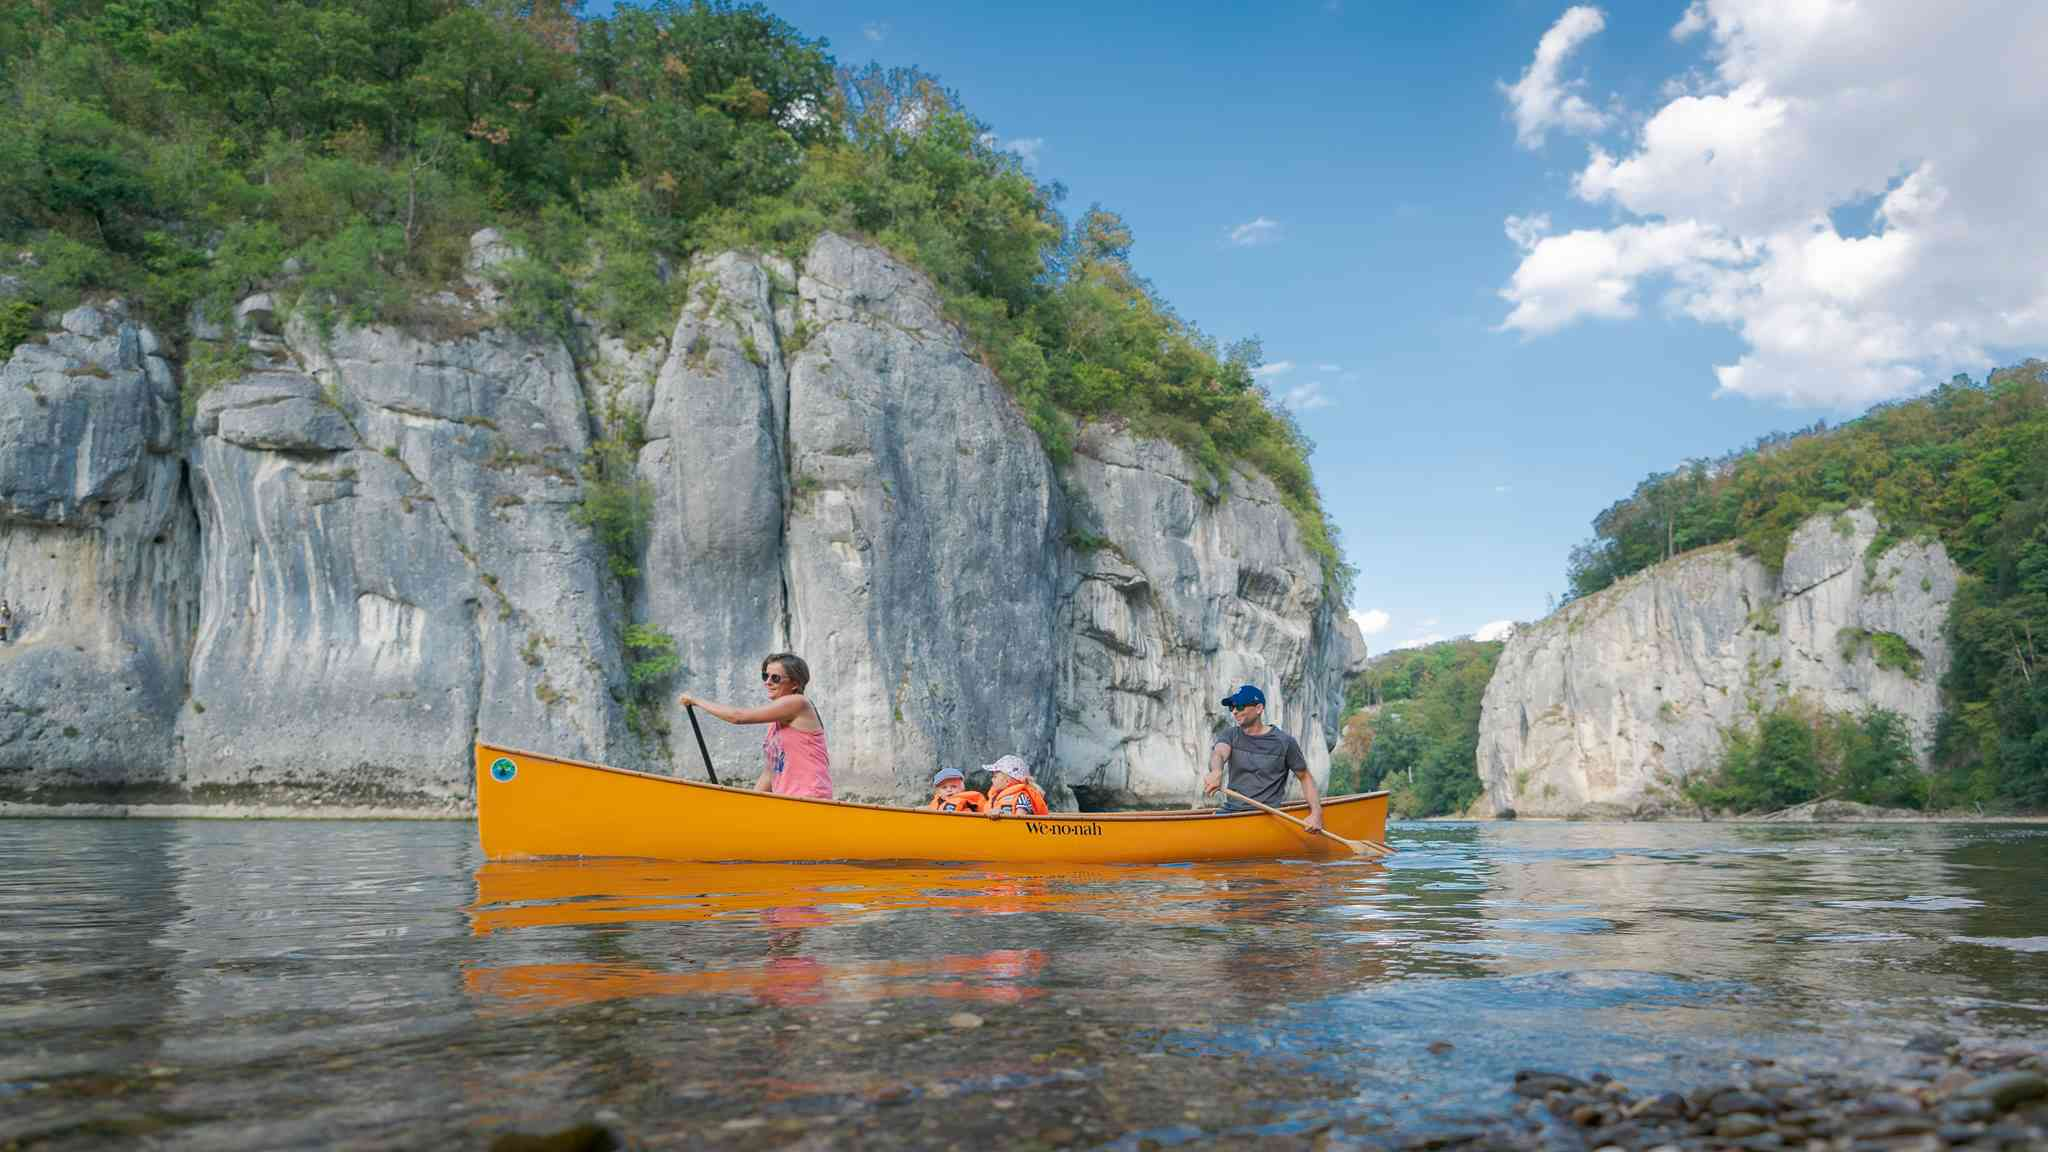 a family canoeing on the river in Altmühlthal Nature Park